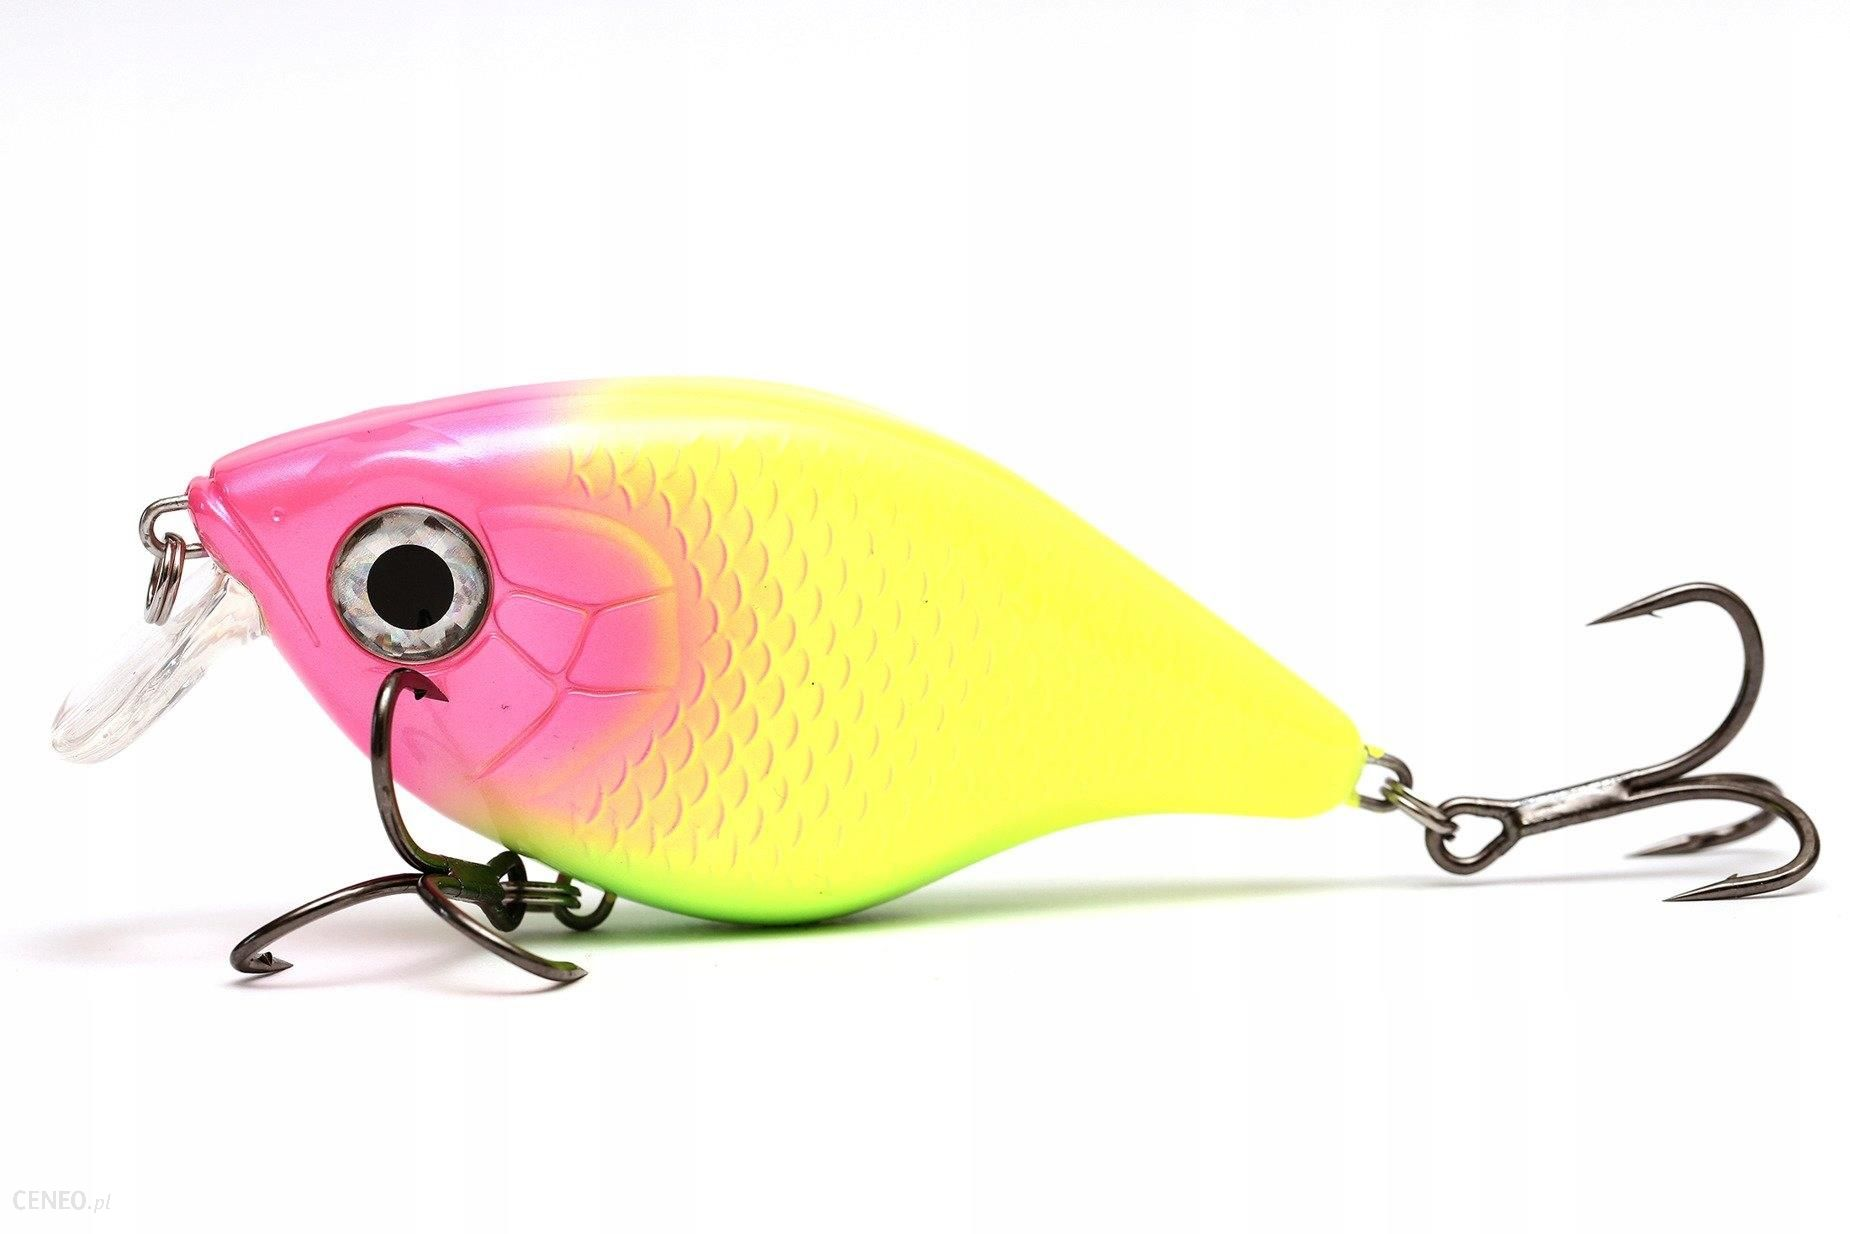 Dam Wobler Madcat Tight-s Shallow Candy 65g Sum